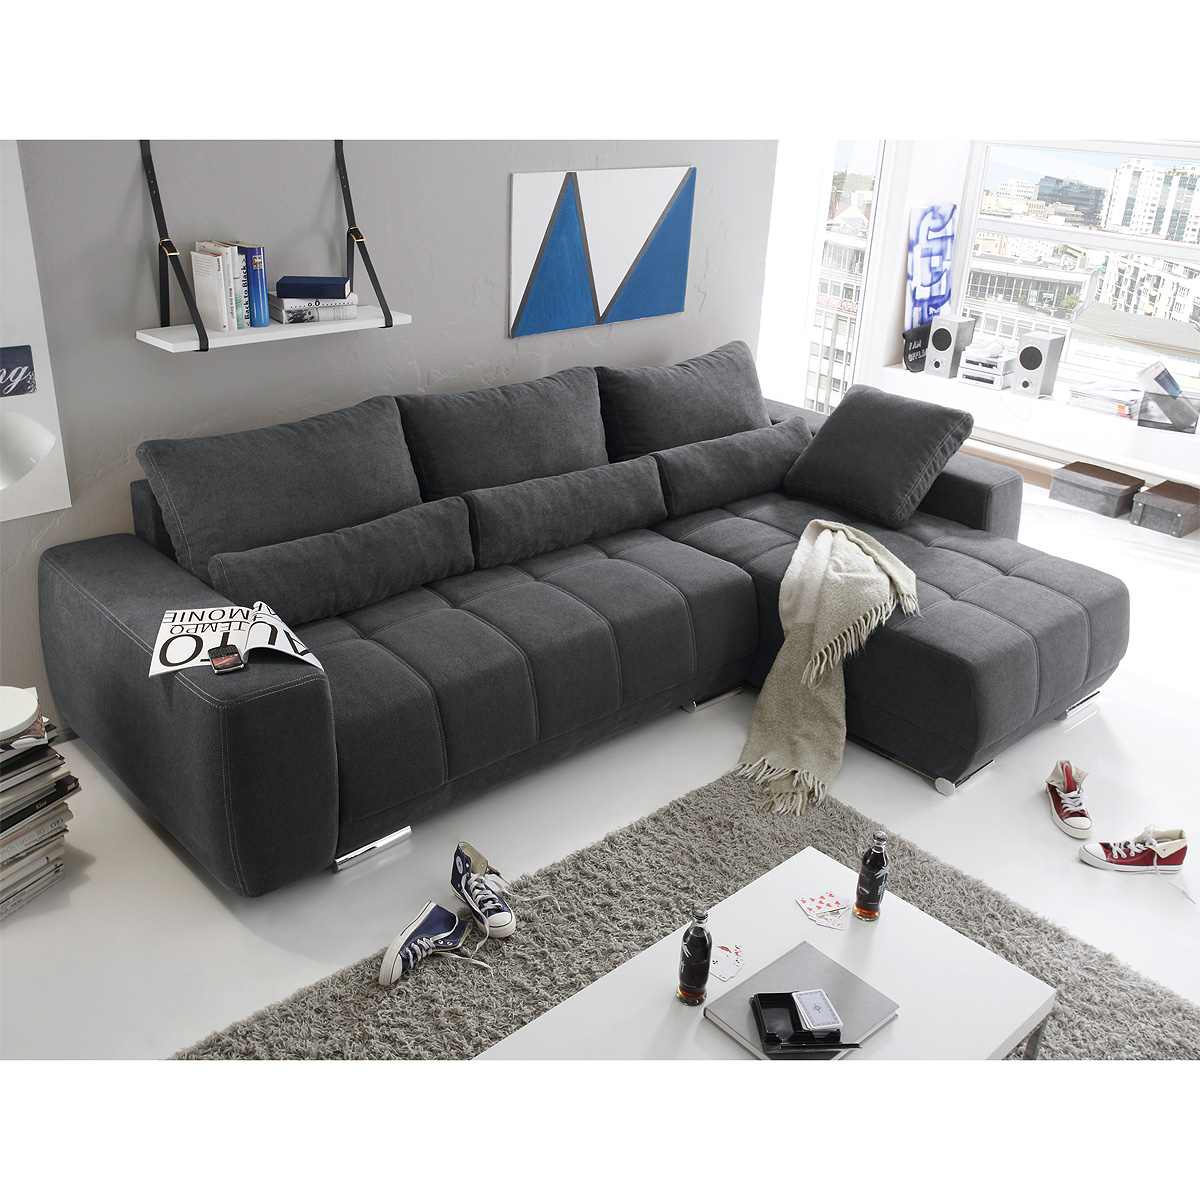 ecksofa lopez sofa wohnlandschaft braun taupe anthrazit. Black Bedroom Furniture Sets. Home Design Ideas